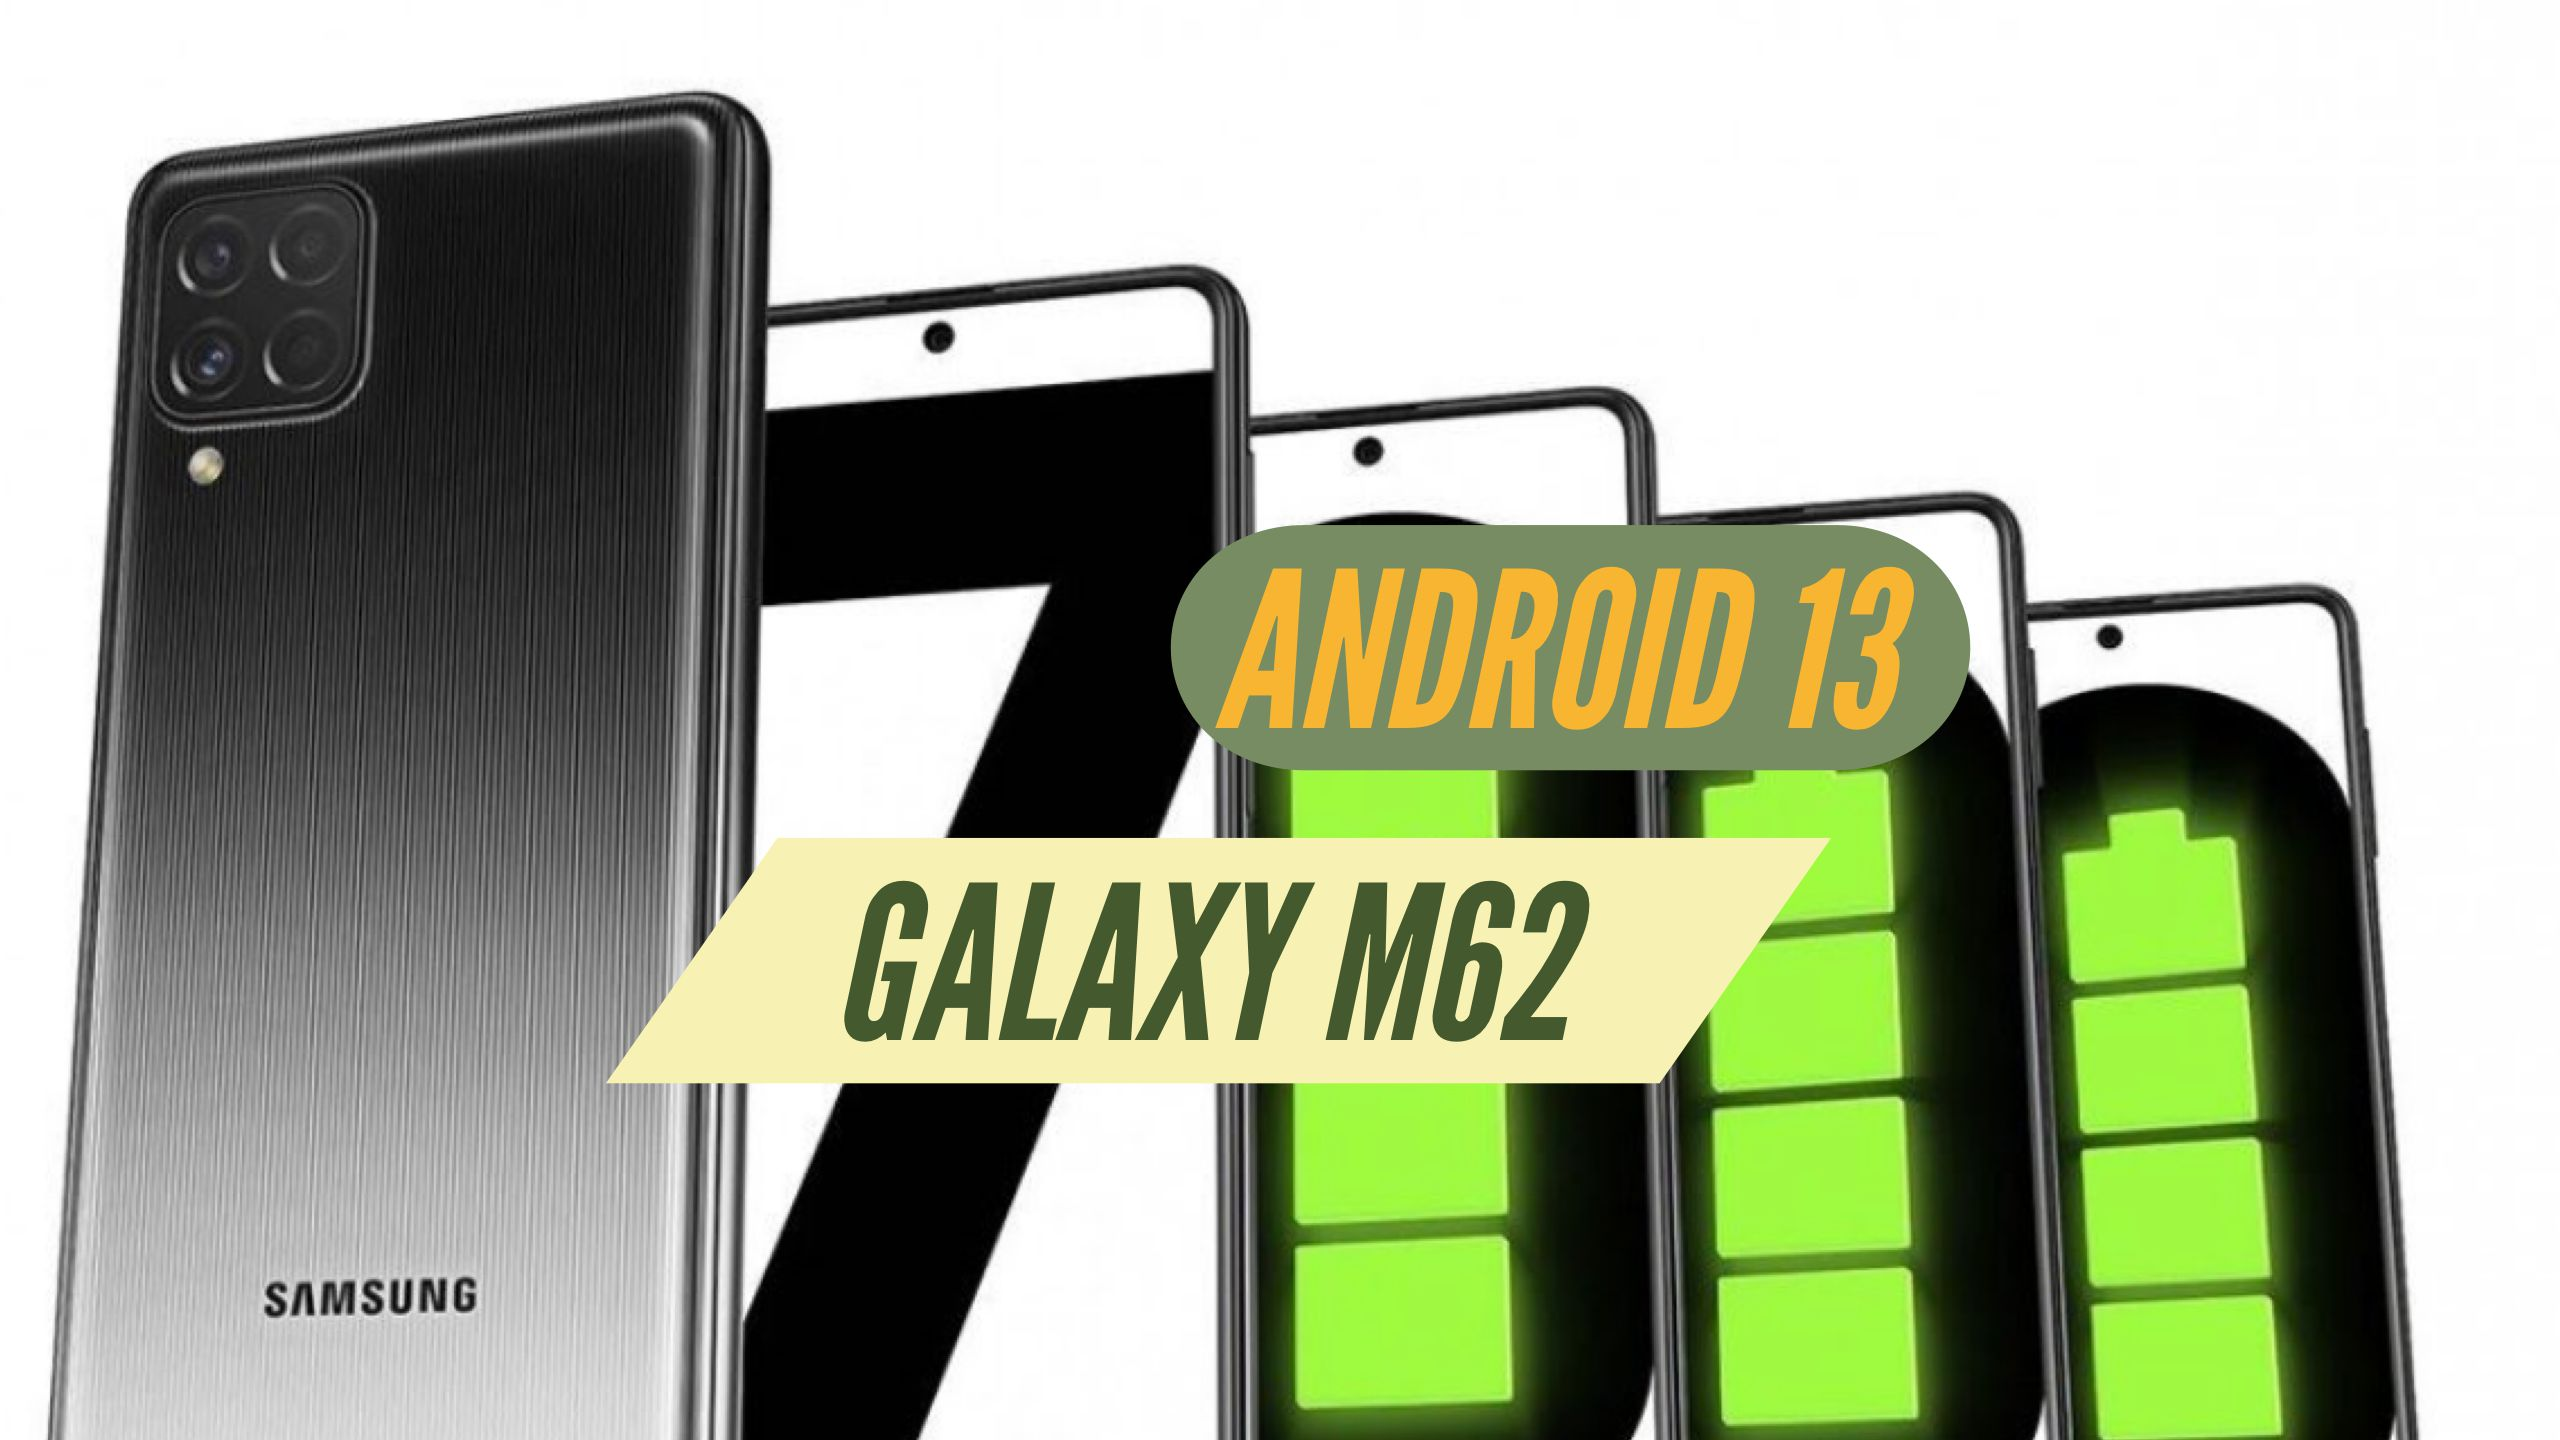 Galaxy M62 Android 13